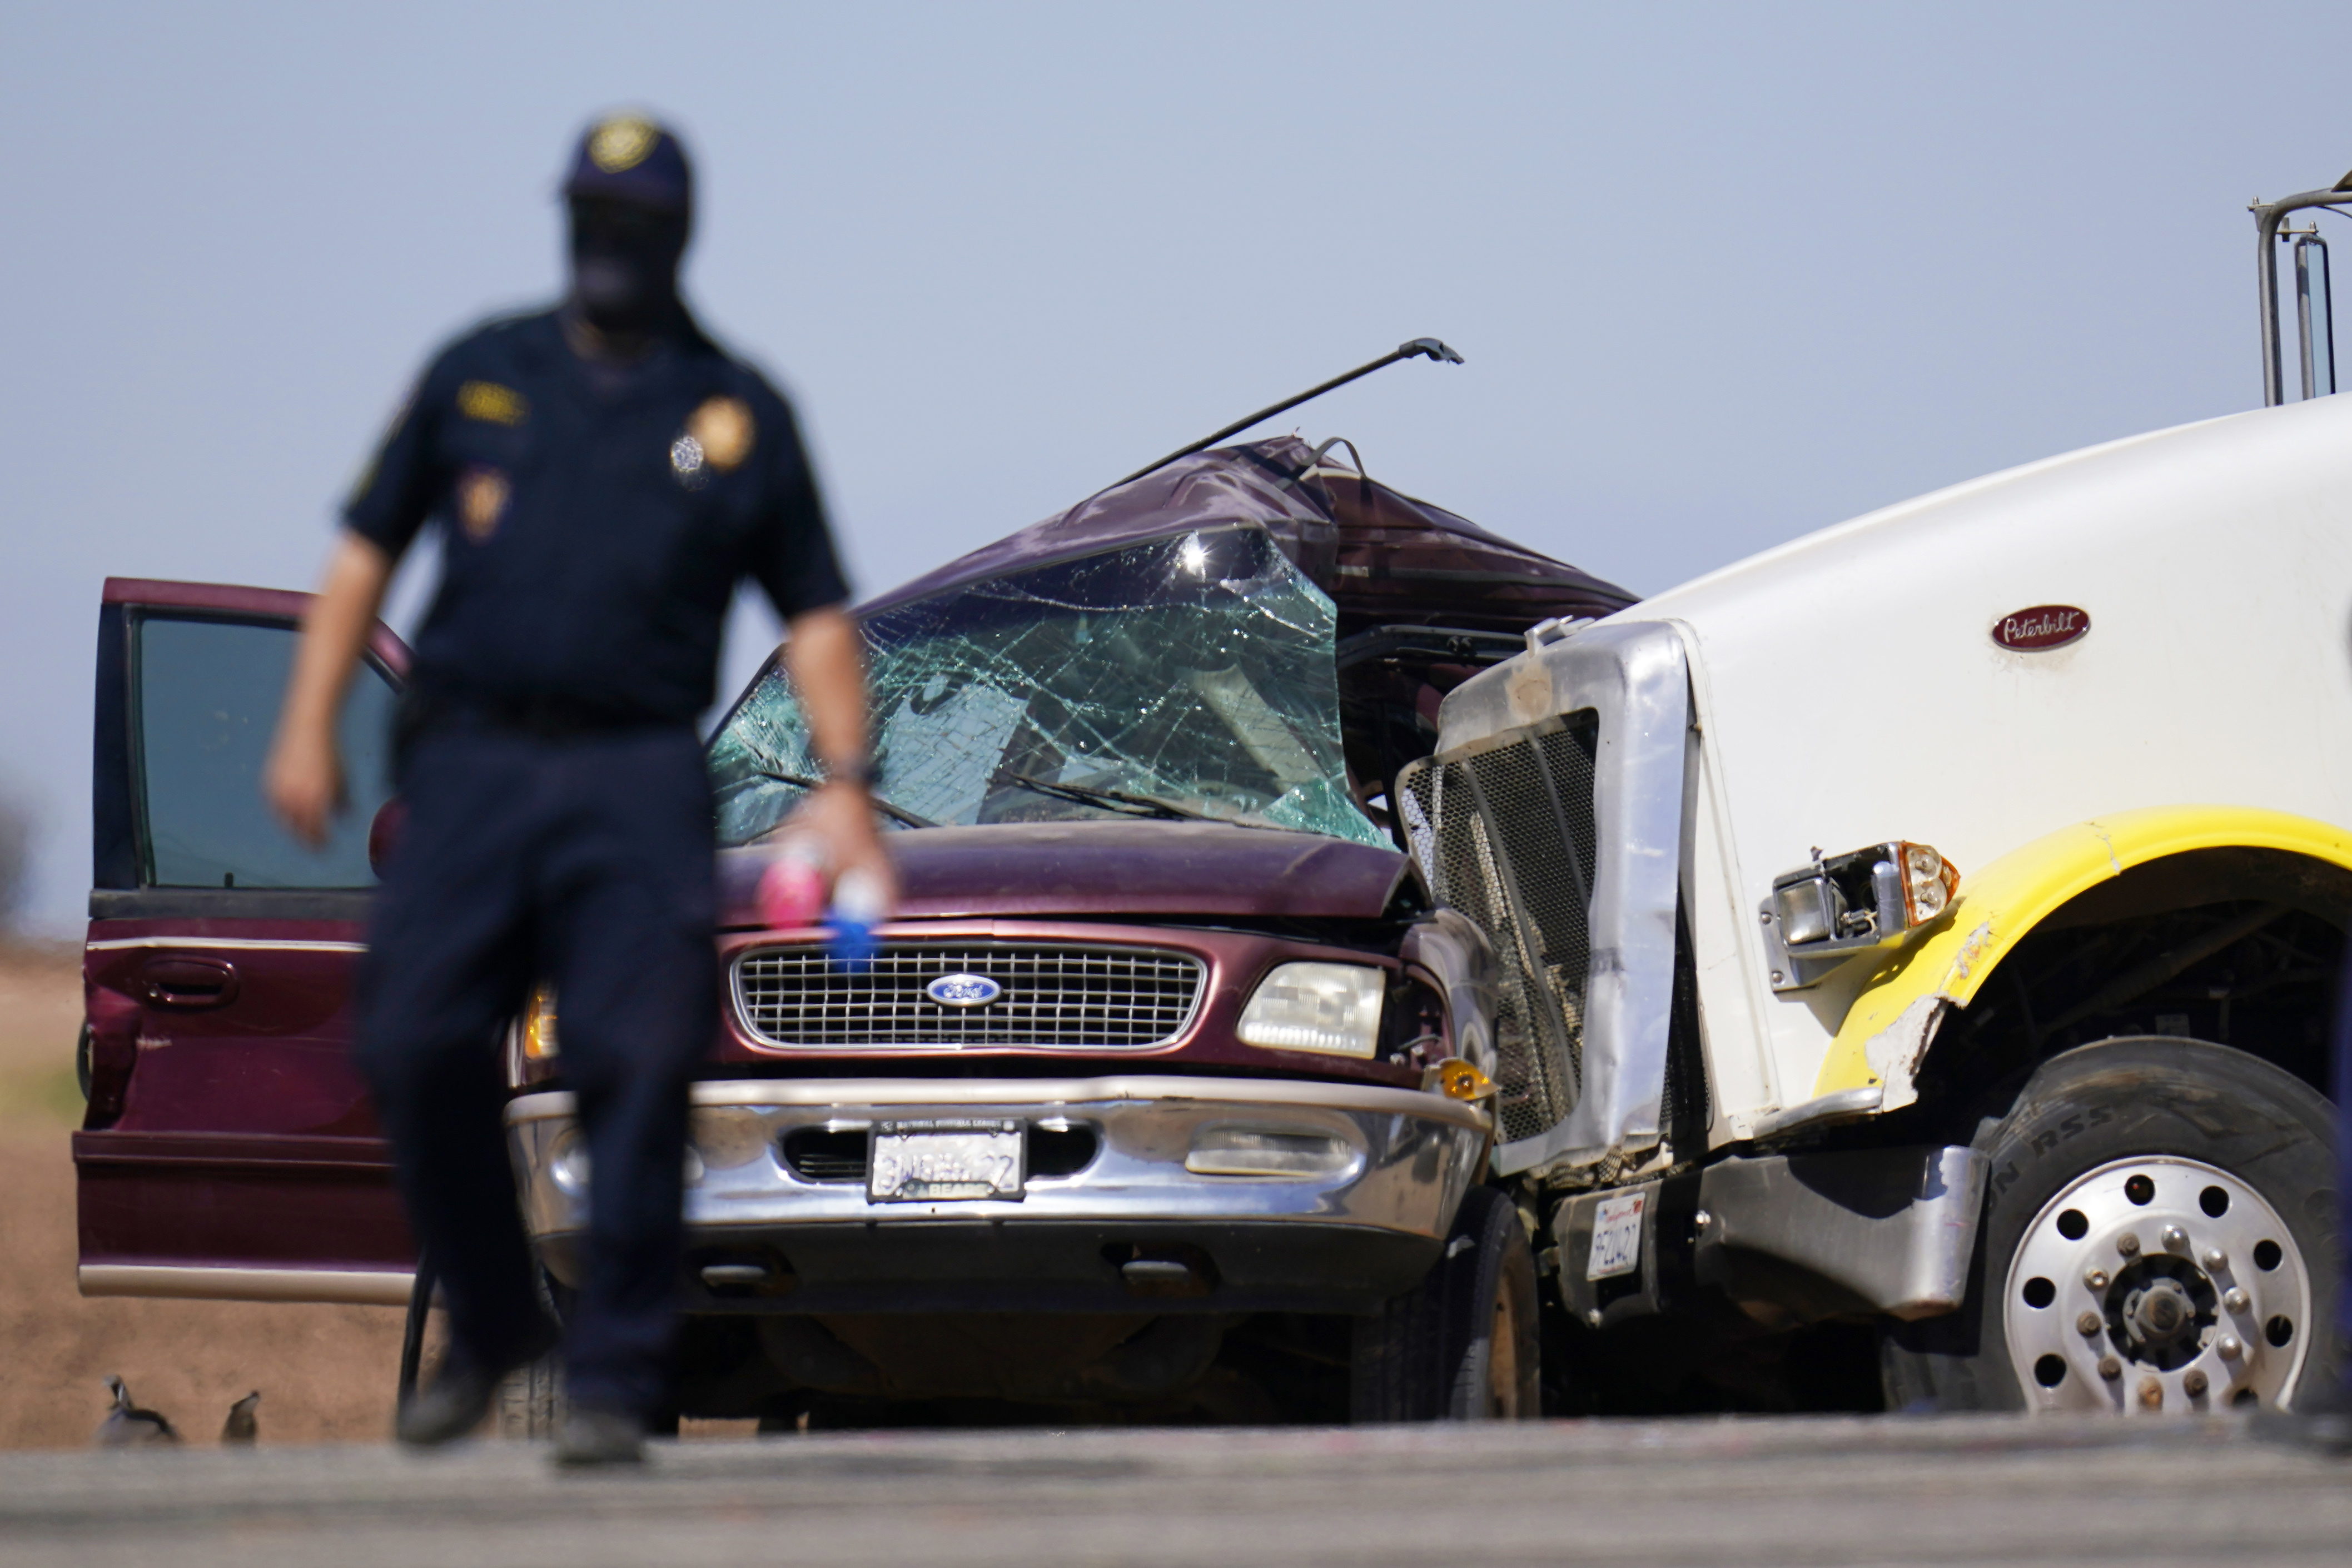 Driver Slowed Or Stopped Before Crash Killed 13 Migrants In Imperial Valley